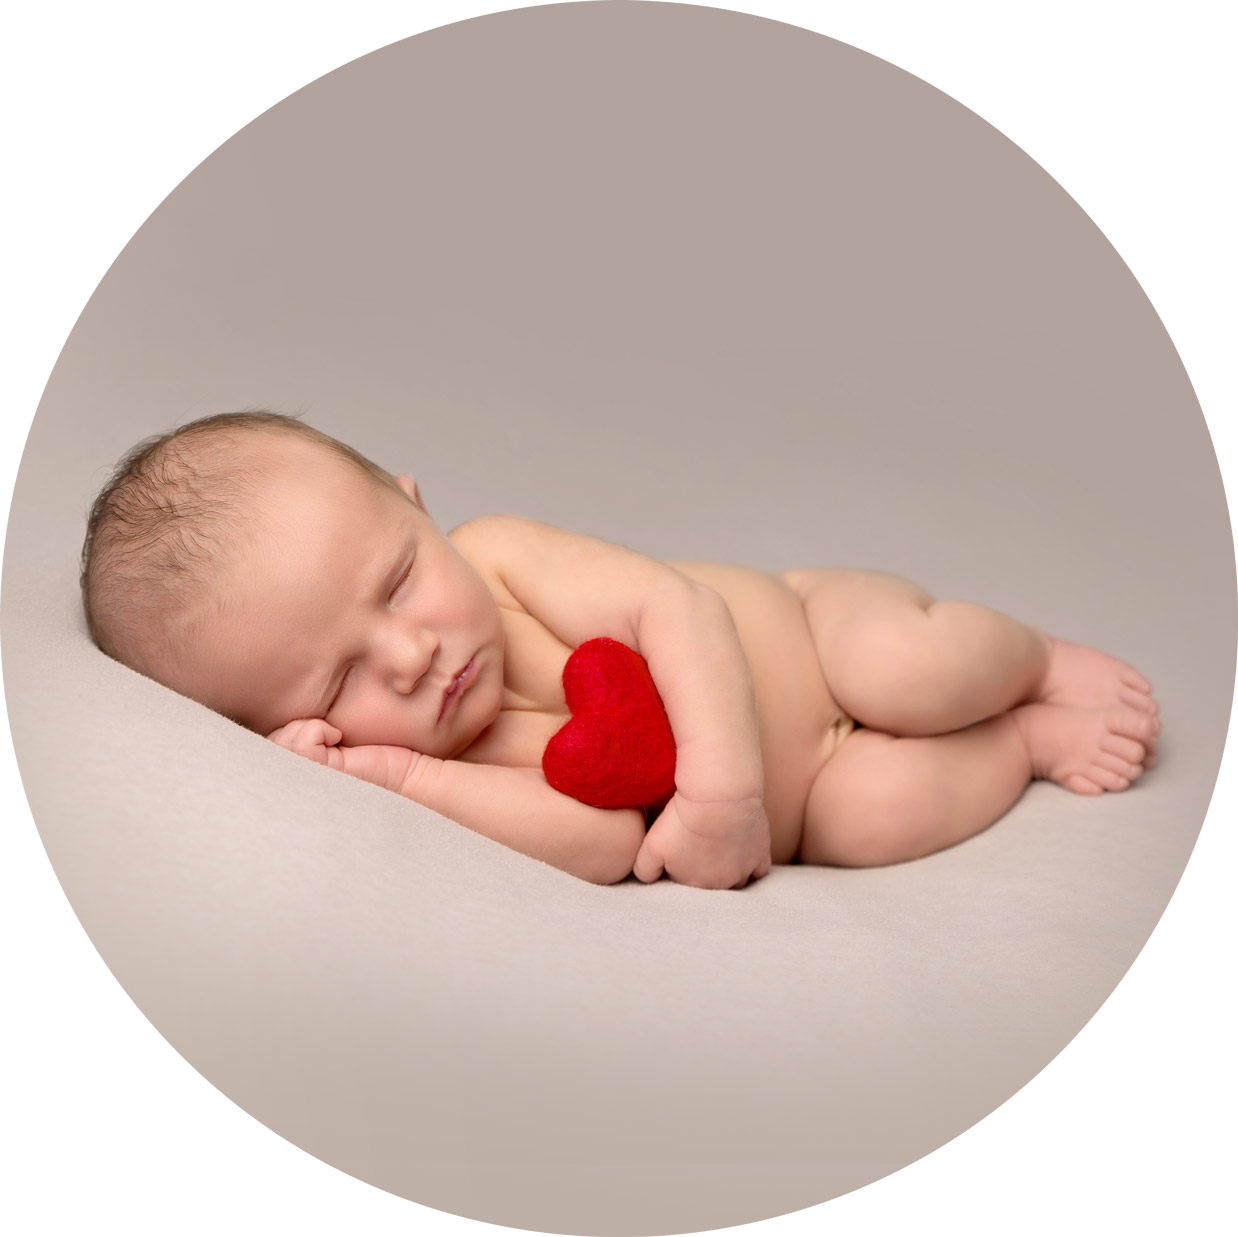 newborn baby girl laying asleep on her side holding a red heart for her newborn photo shoot in Hemel hempstead